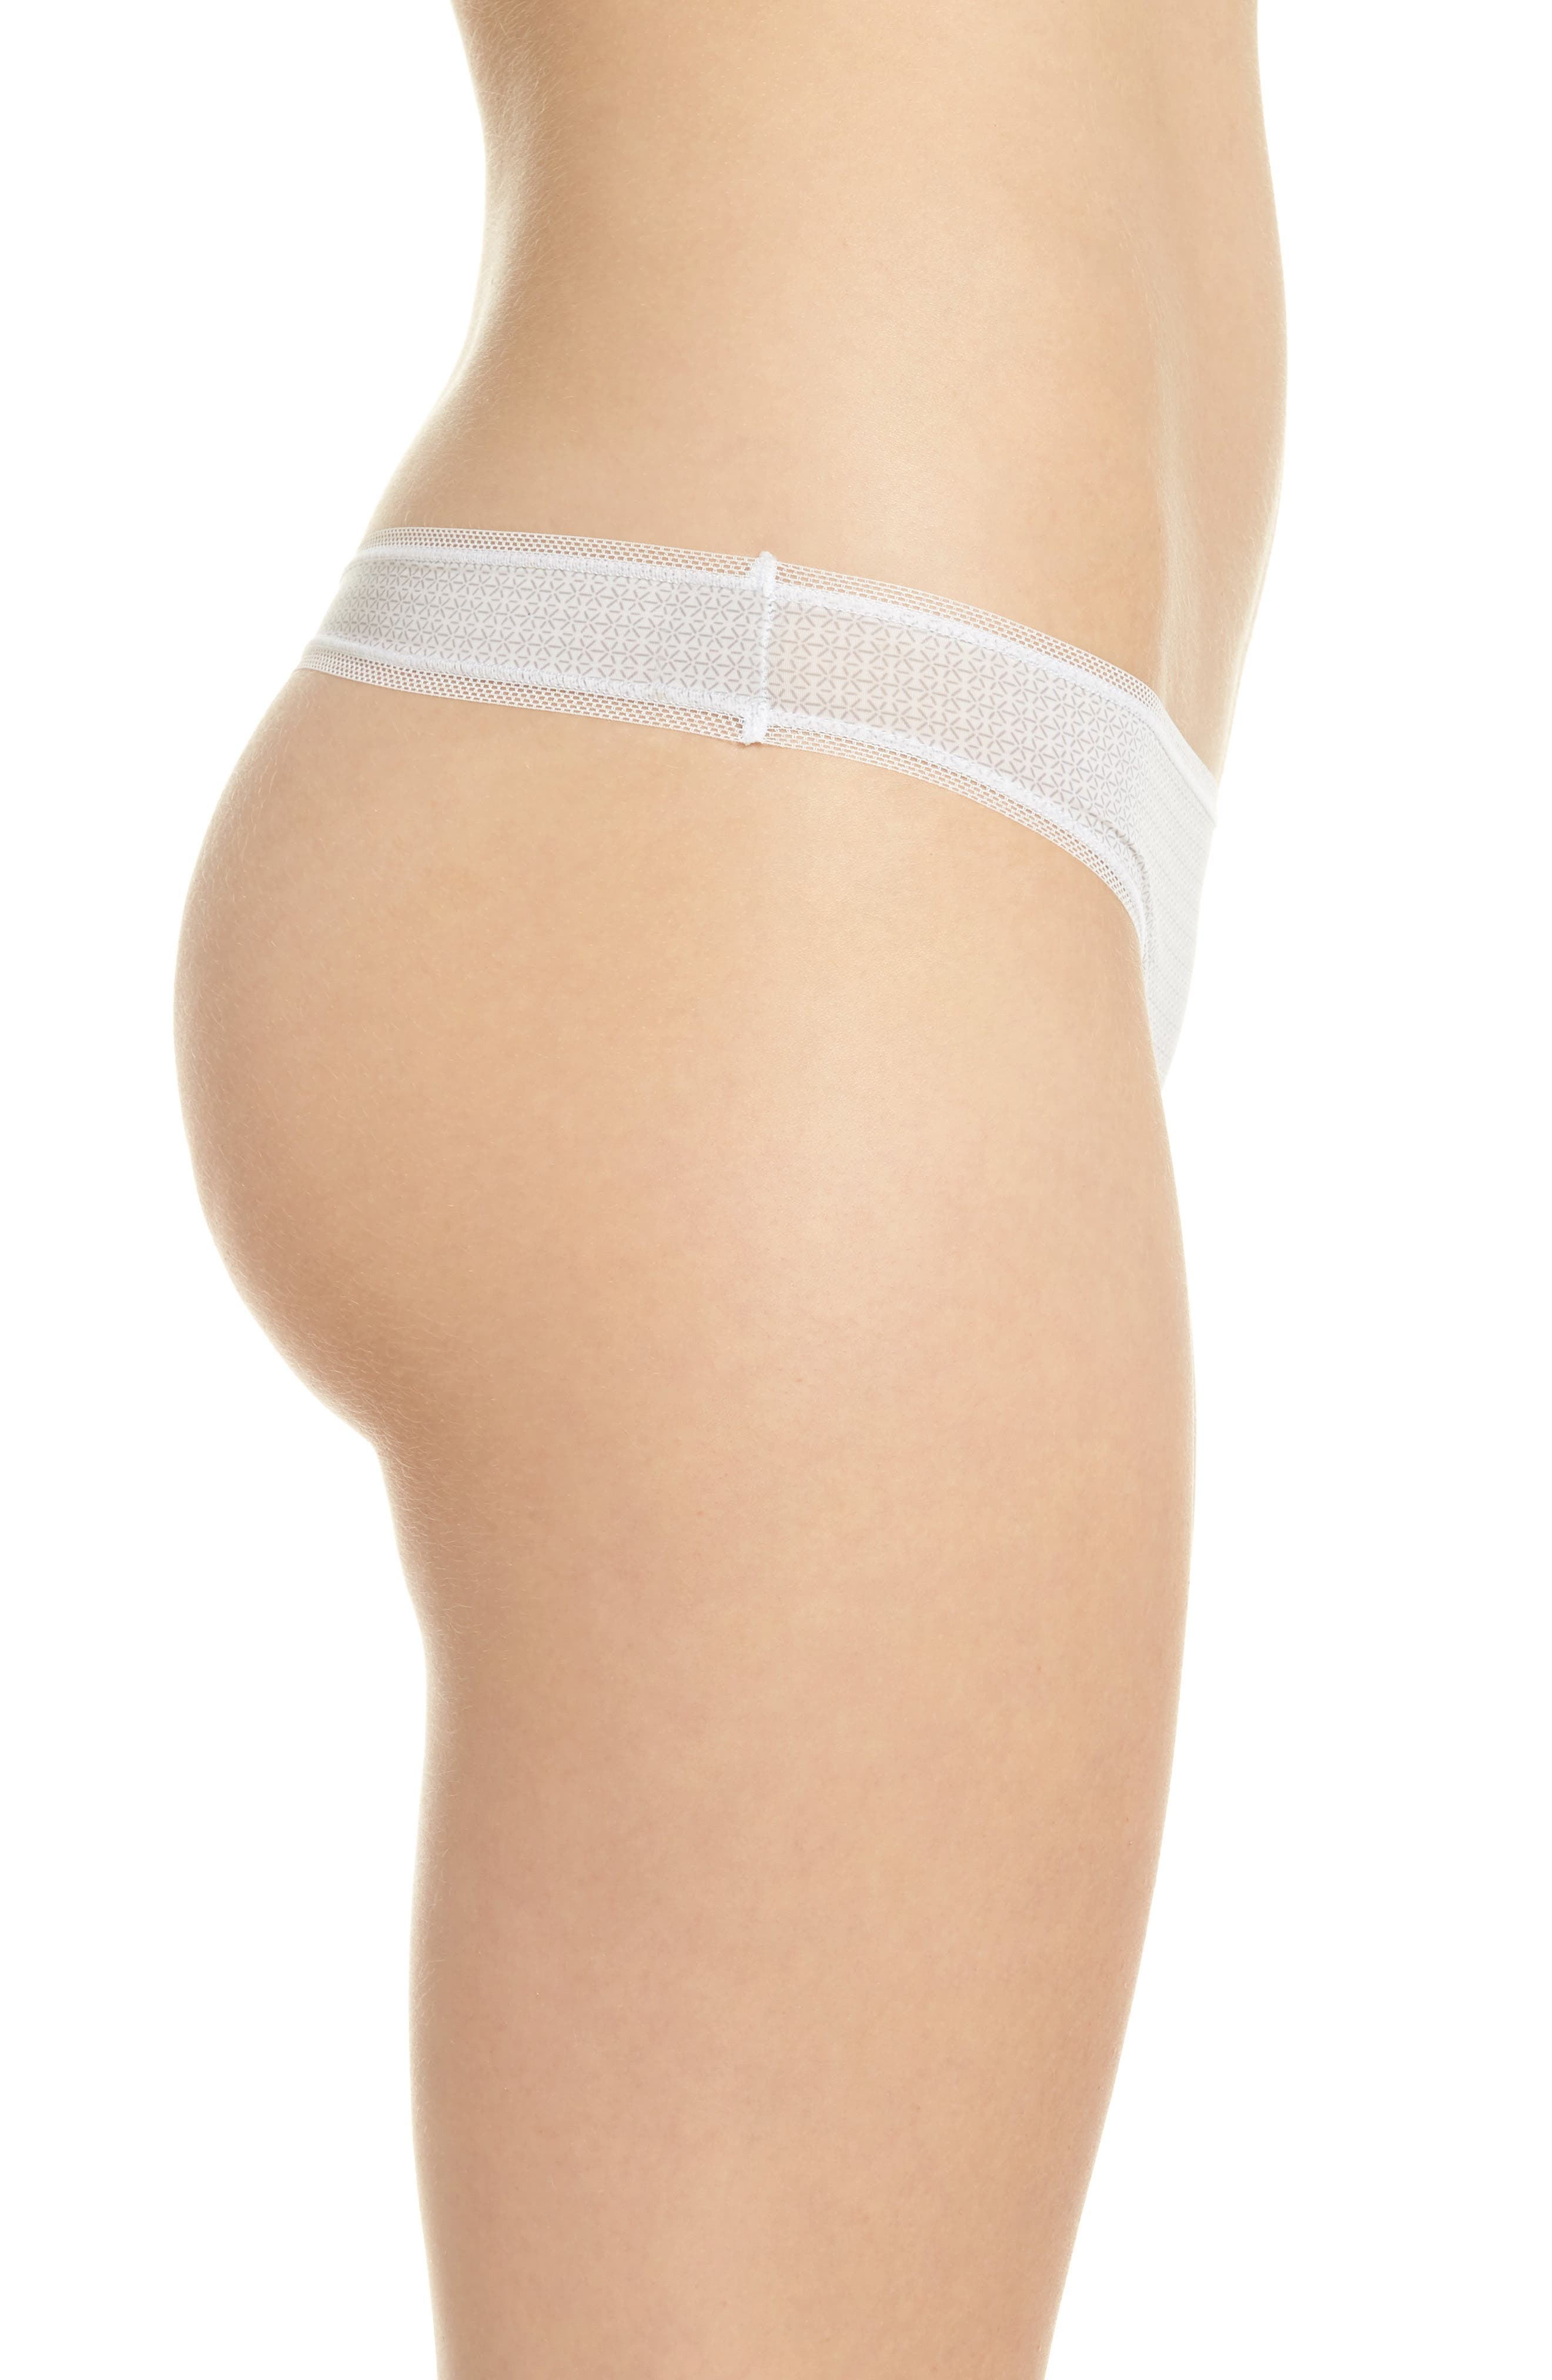 Alternate Image 3  - DKNY Low Rise Thong (3 for $33)